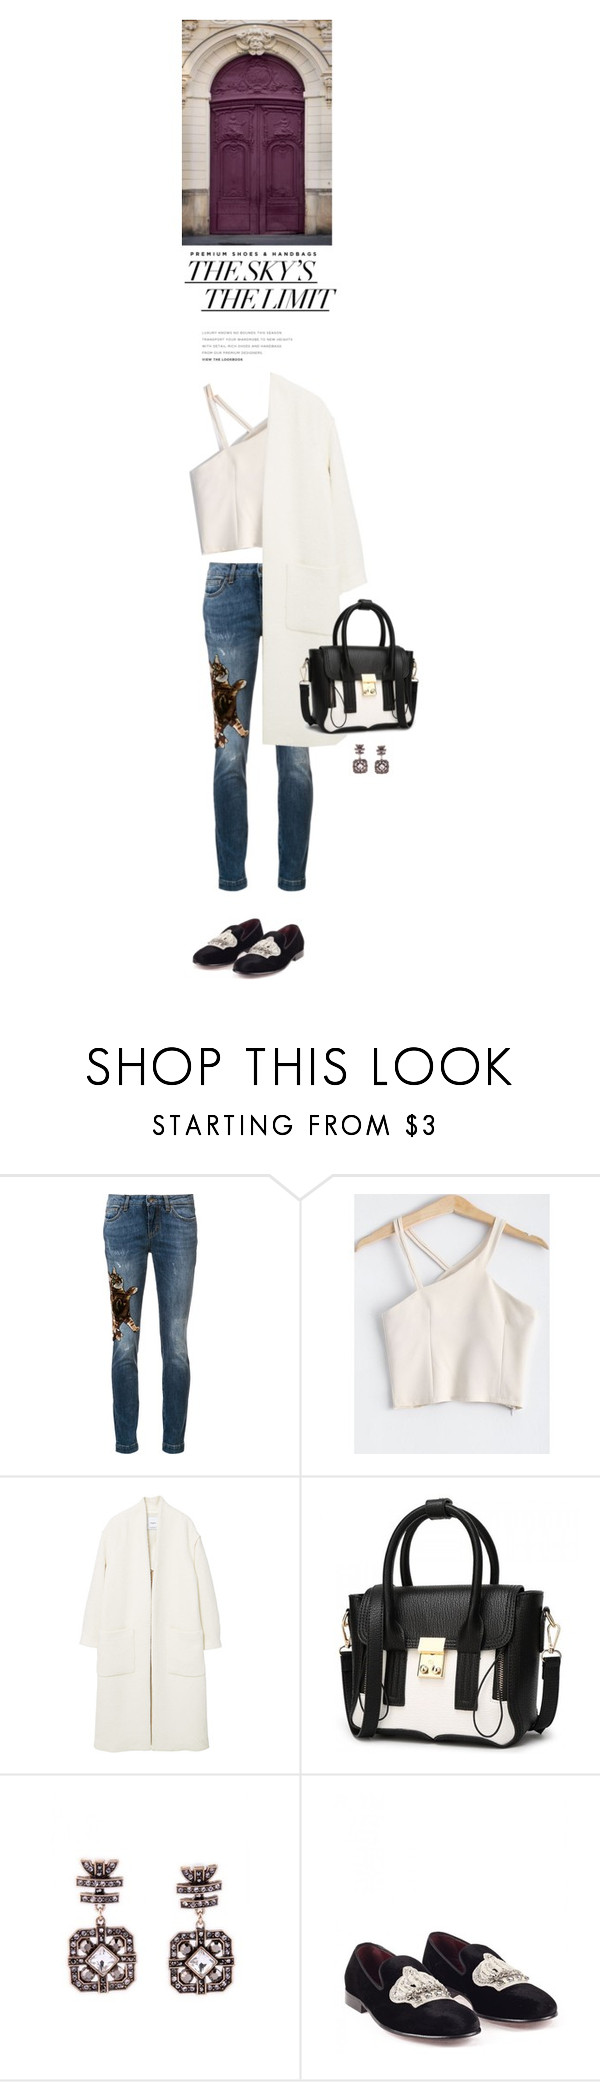 """Dresslily"" by s-thinks ❤ liked on Polyvore featuring Dolce&Gabbana and MANGO"